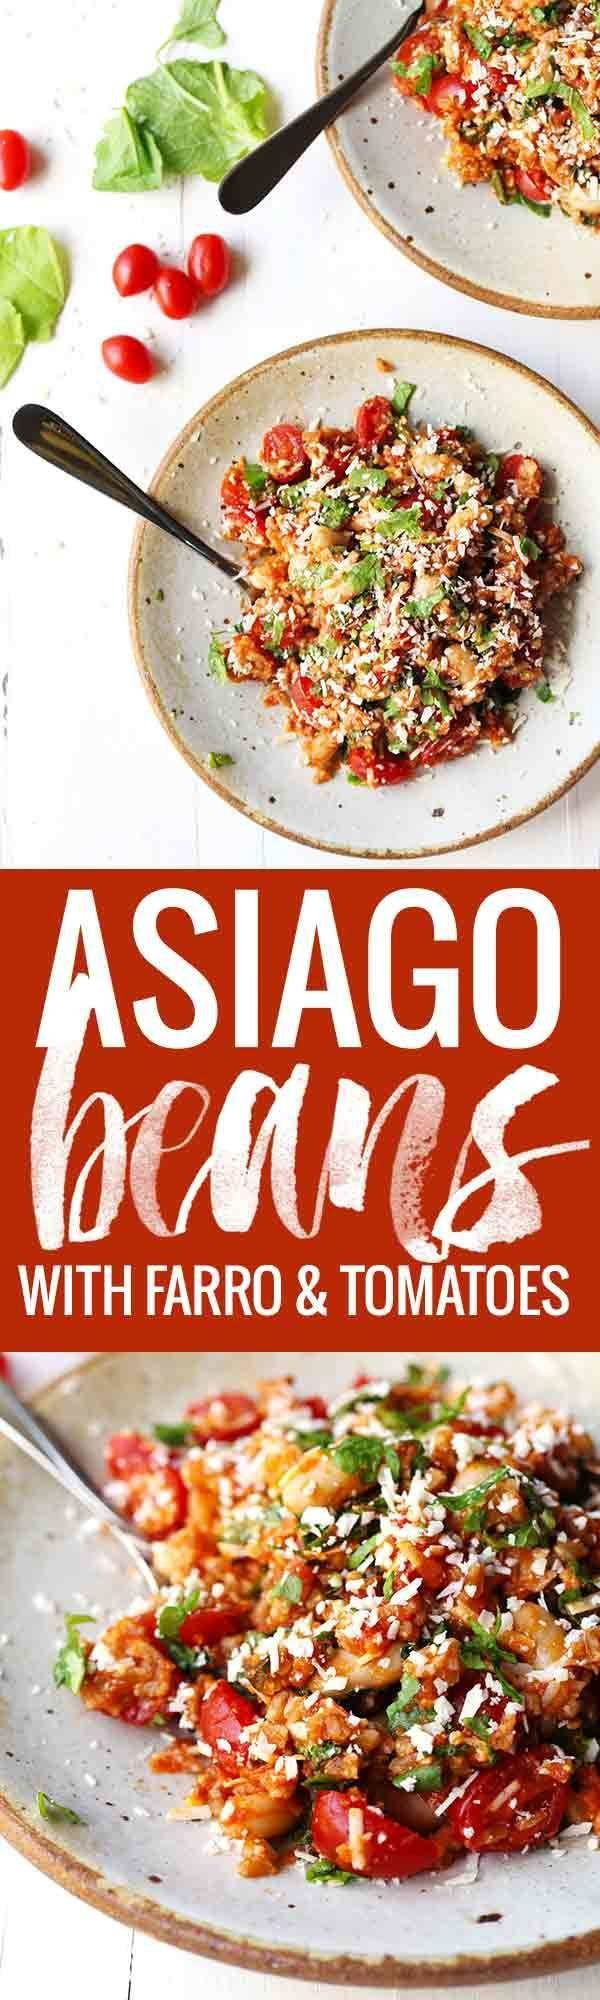 Asiago White Beans with Farro, Kale, and Tomatoes - a colorful, healthy one-pot meal.